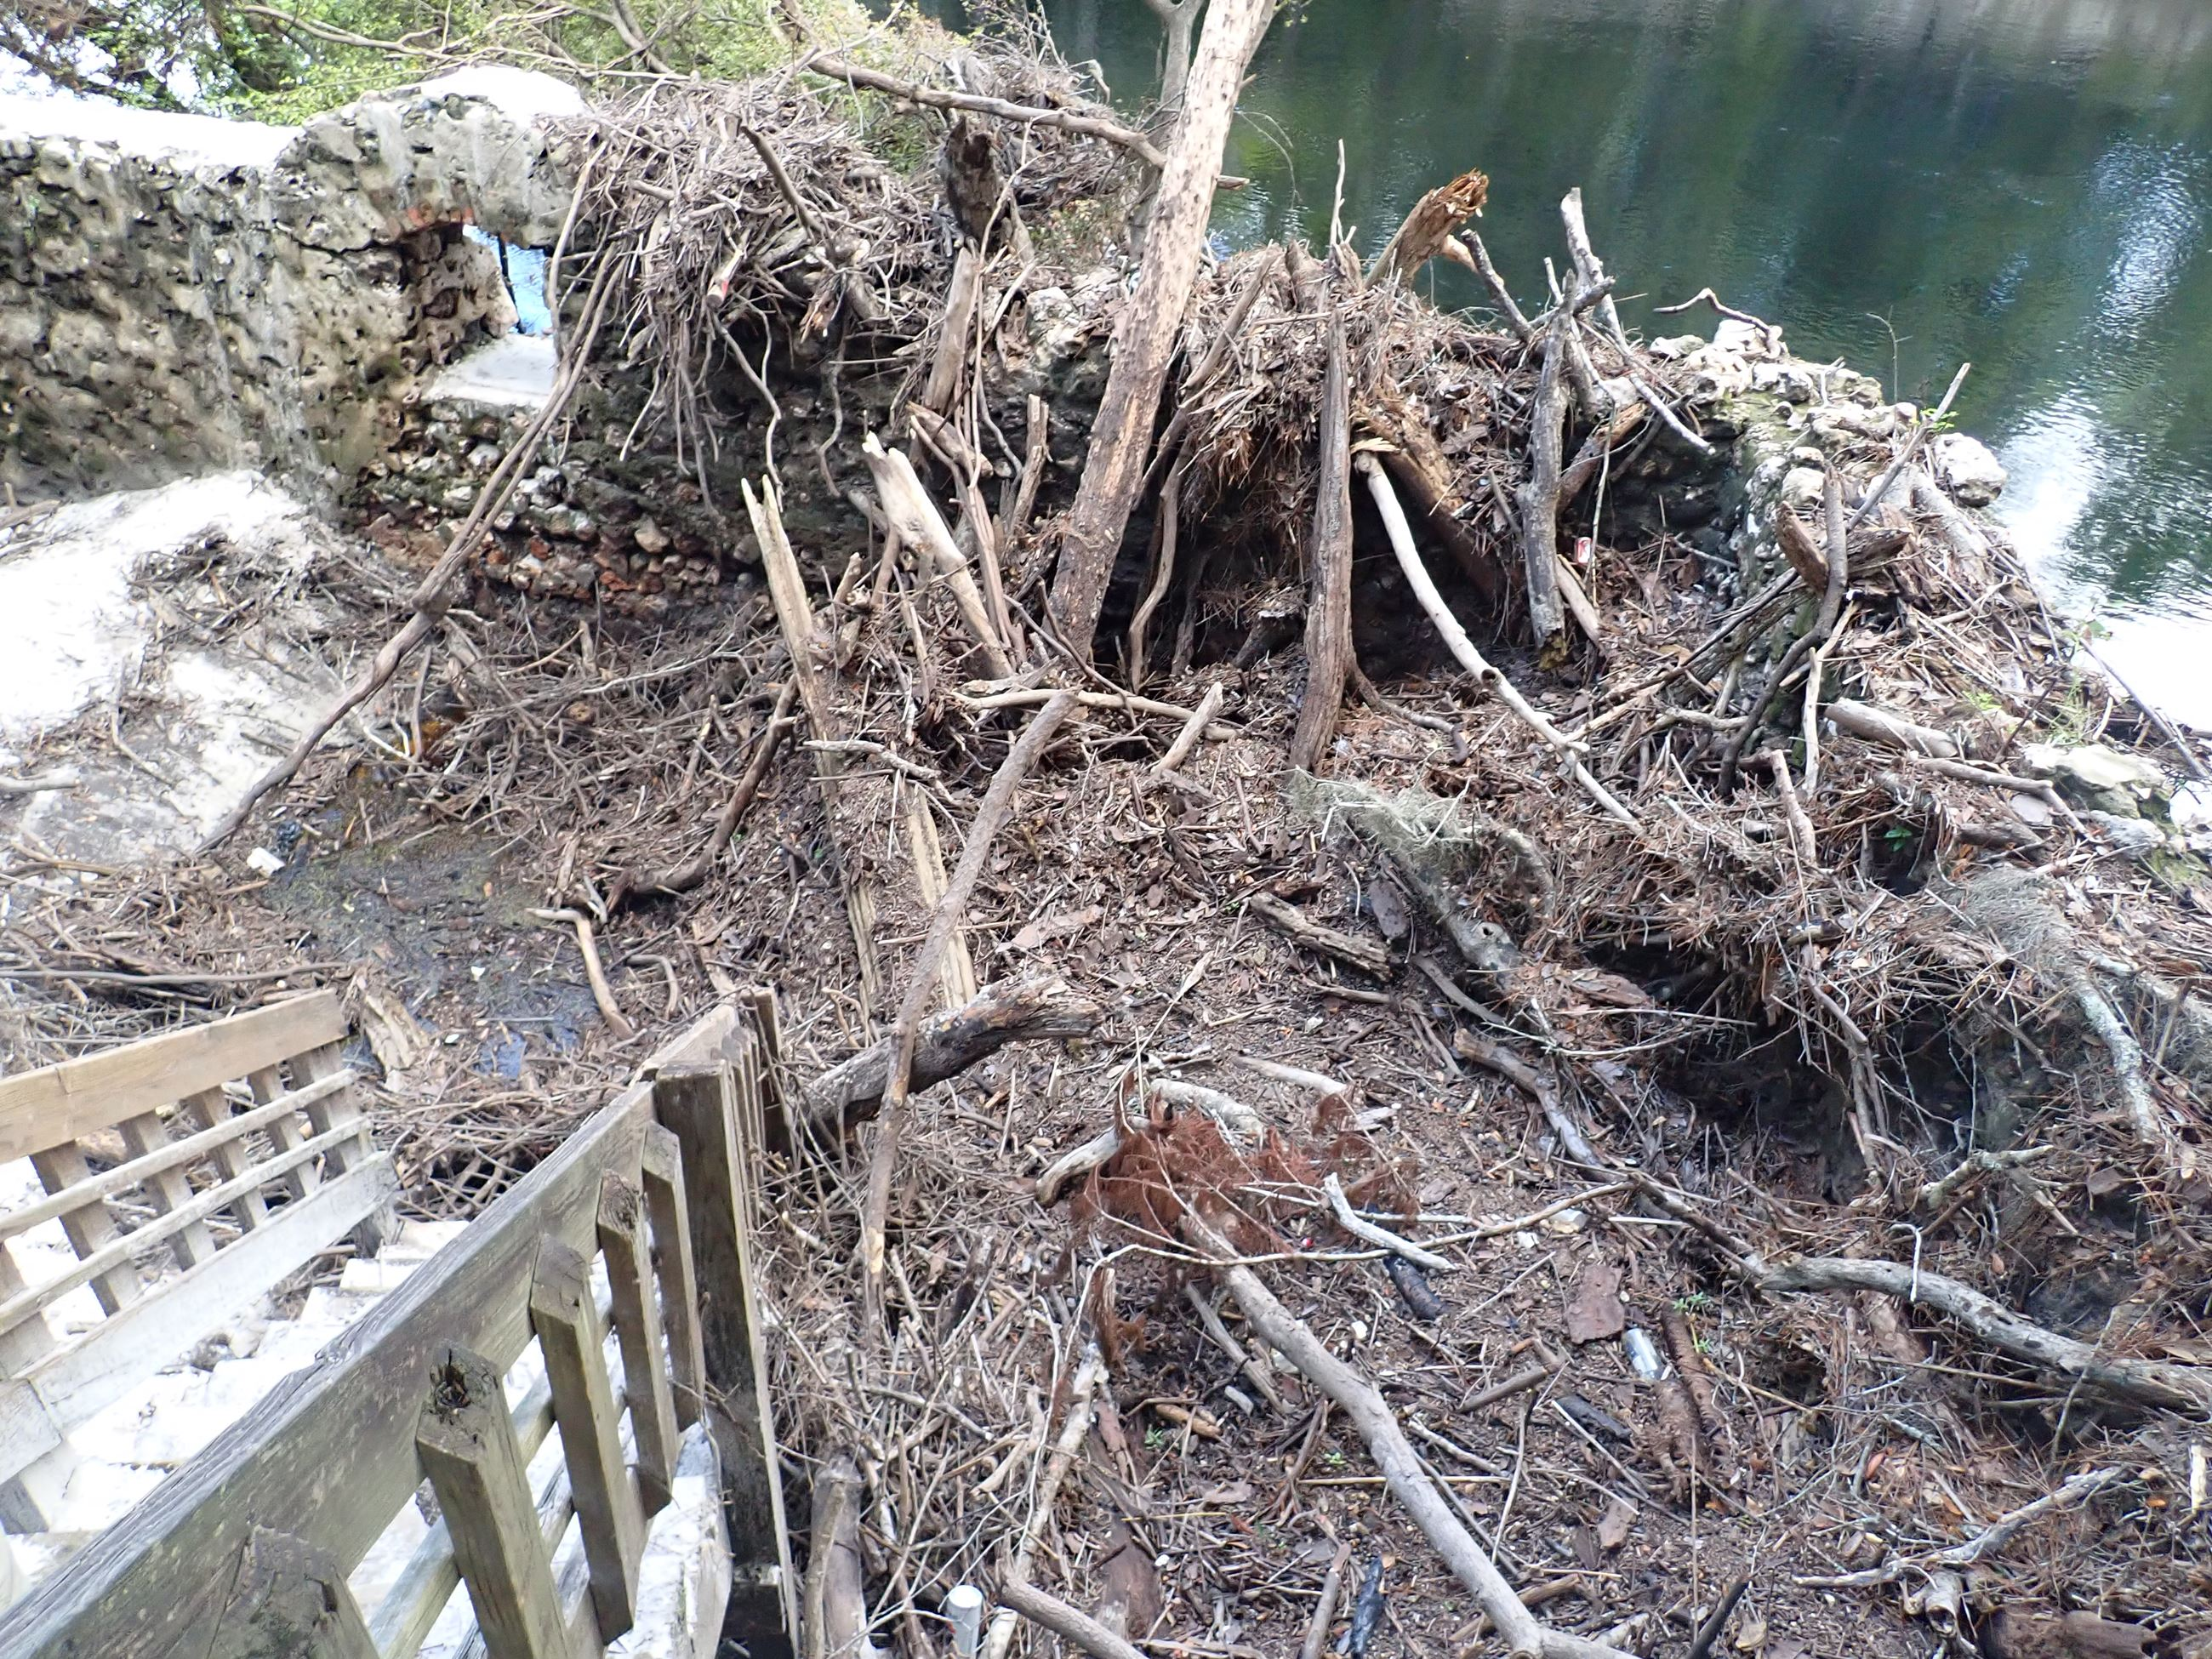 Debris and Sediment at Suwannee Springs